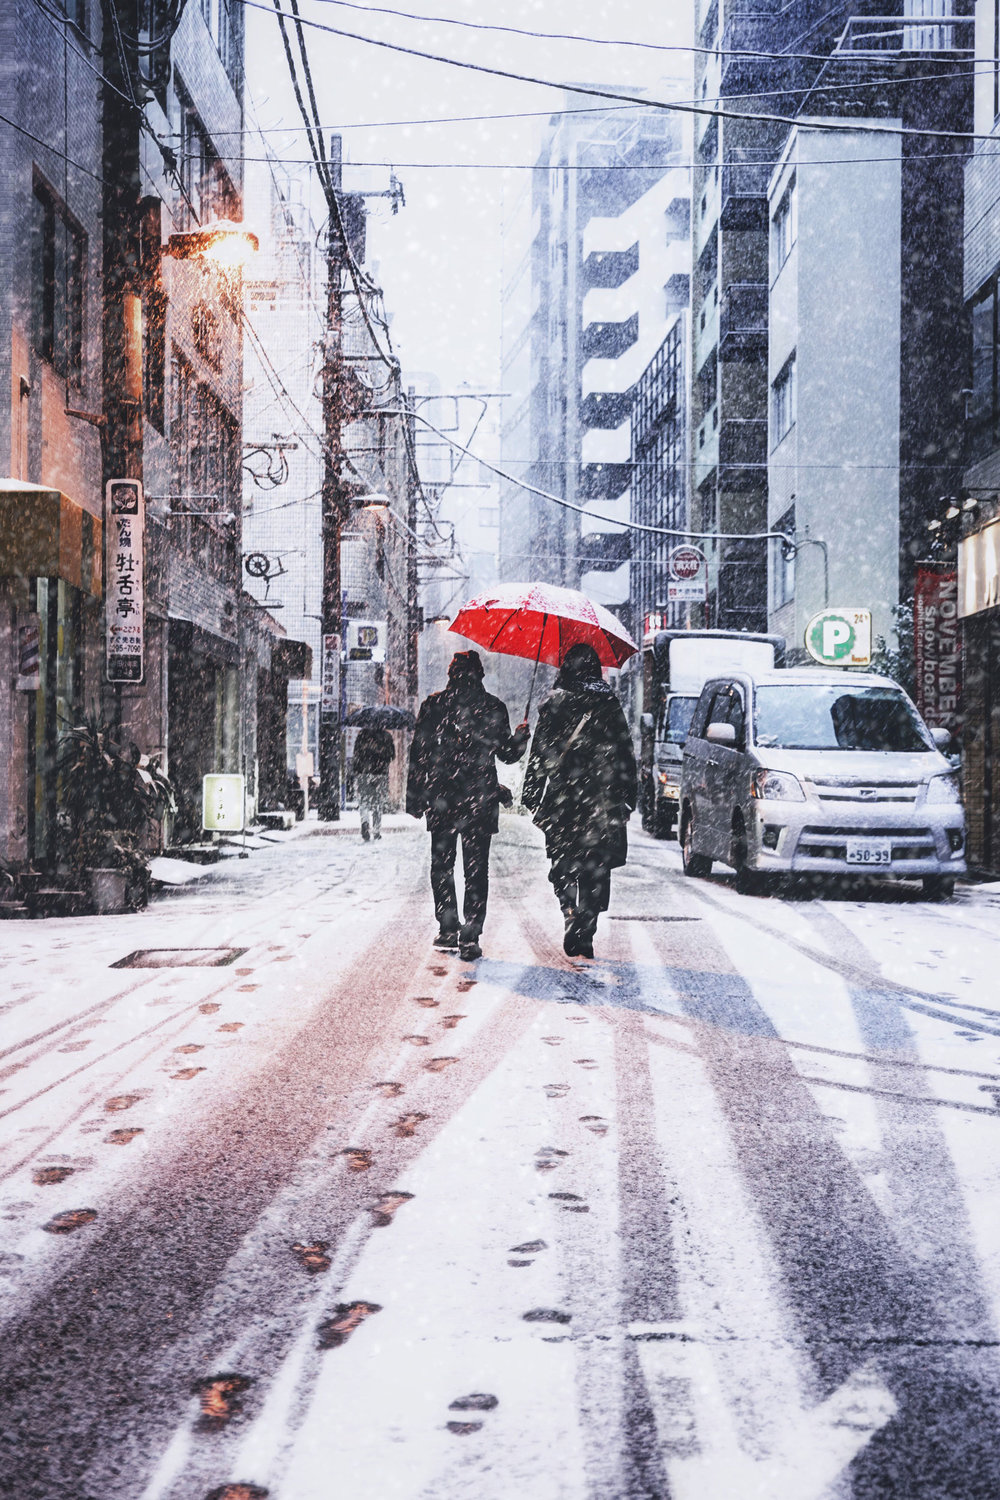 A couple shares an umbrella under the snow near Ochanomizu.